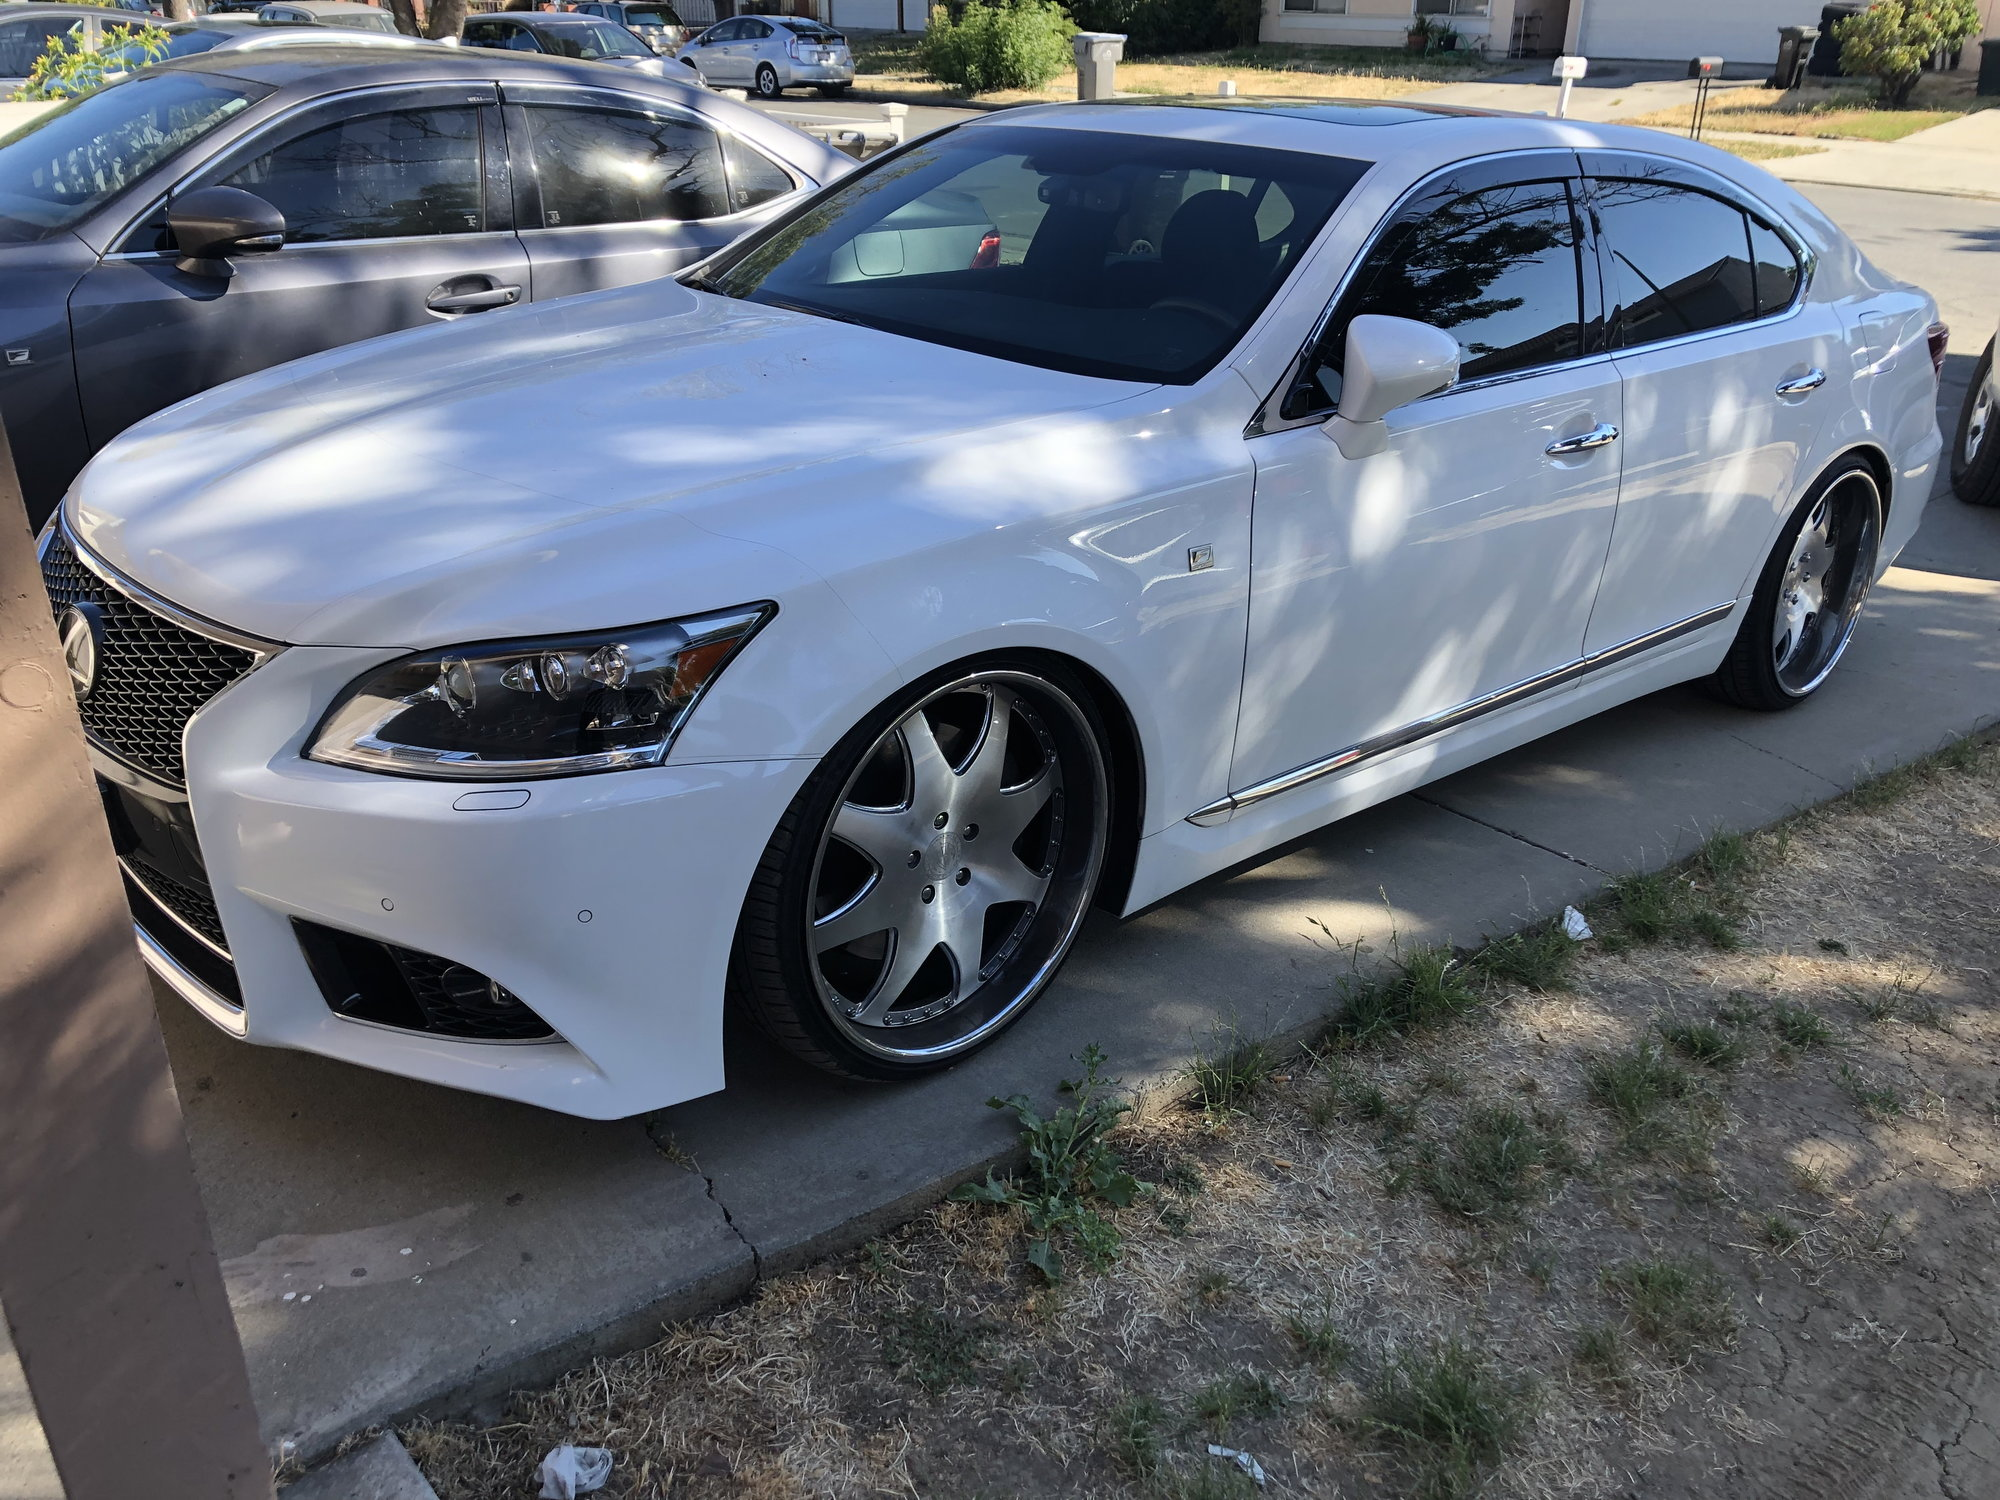 Ls460 rides like crap    any solutions? - ClubLexus - Lexus